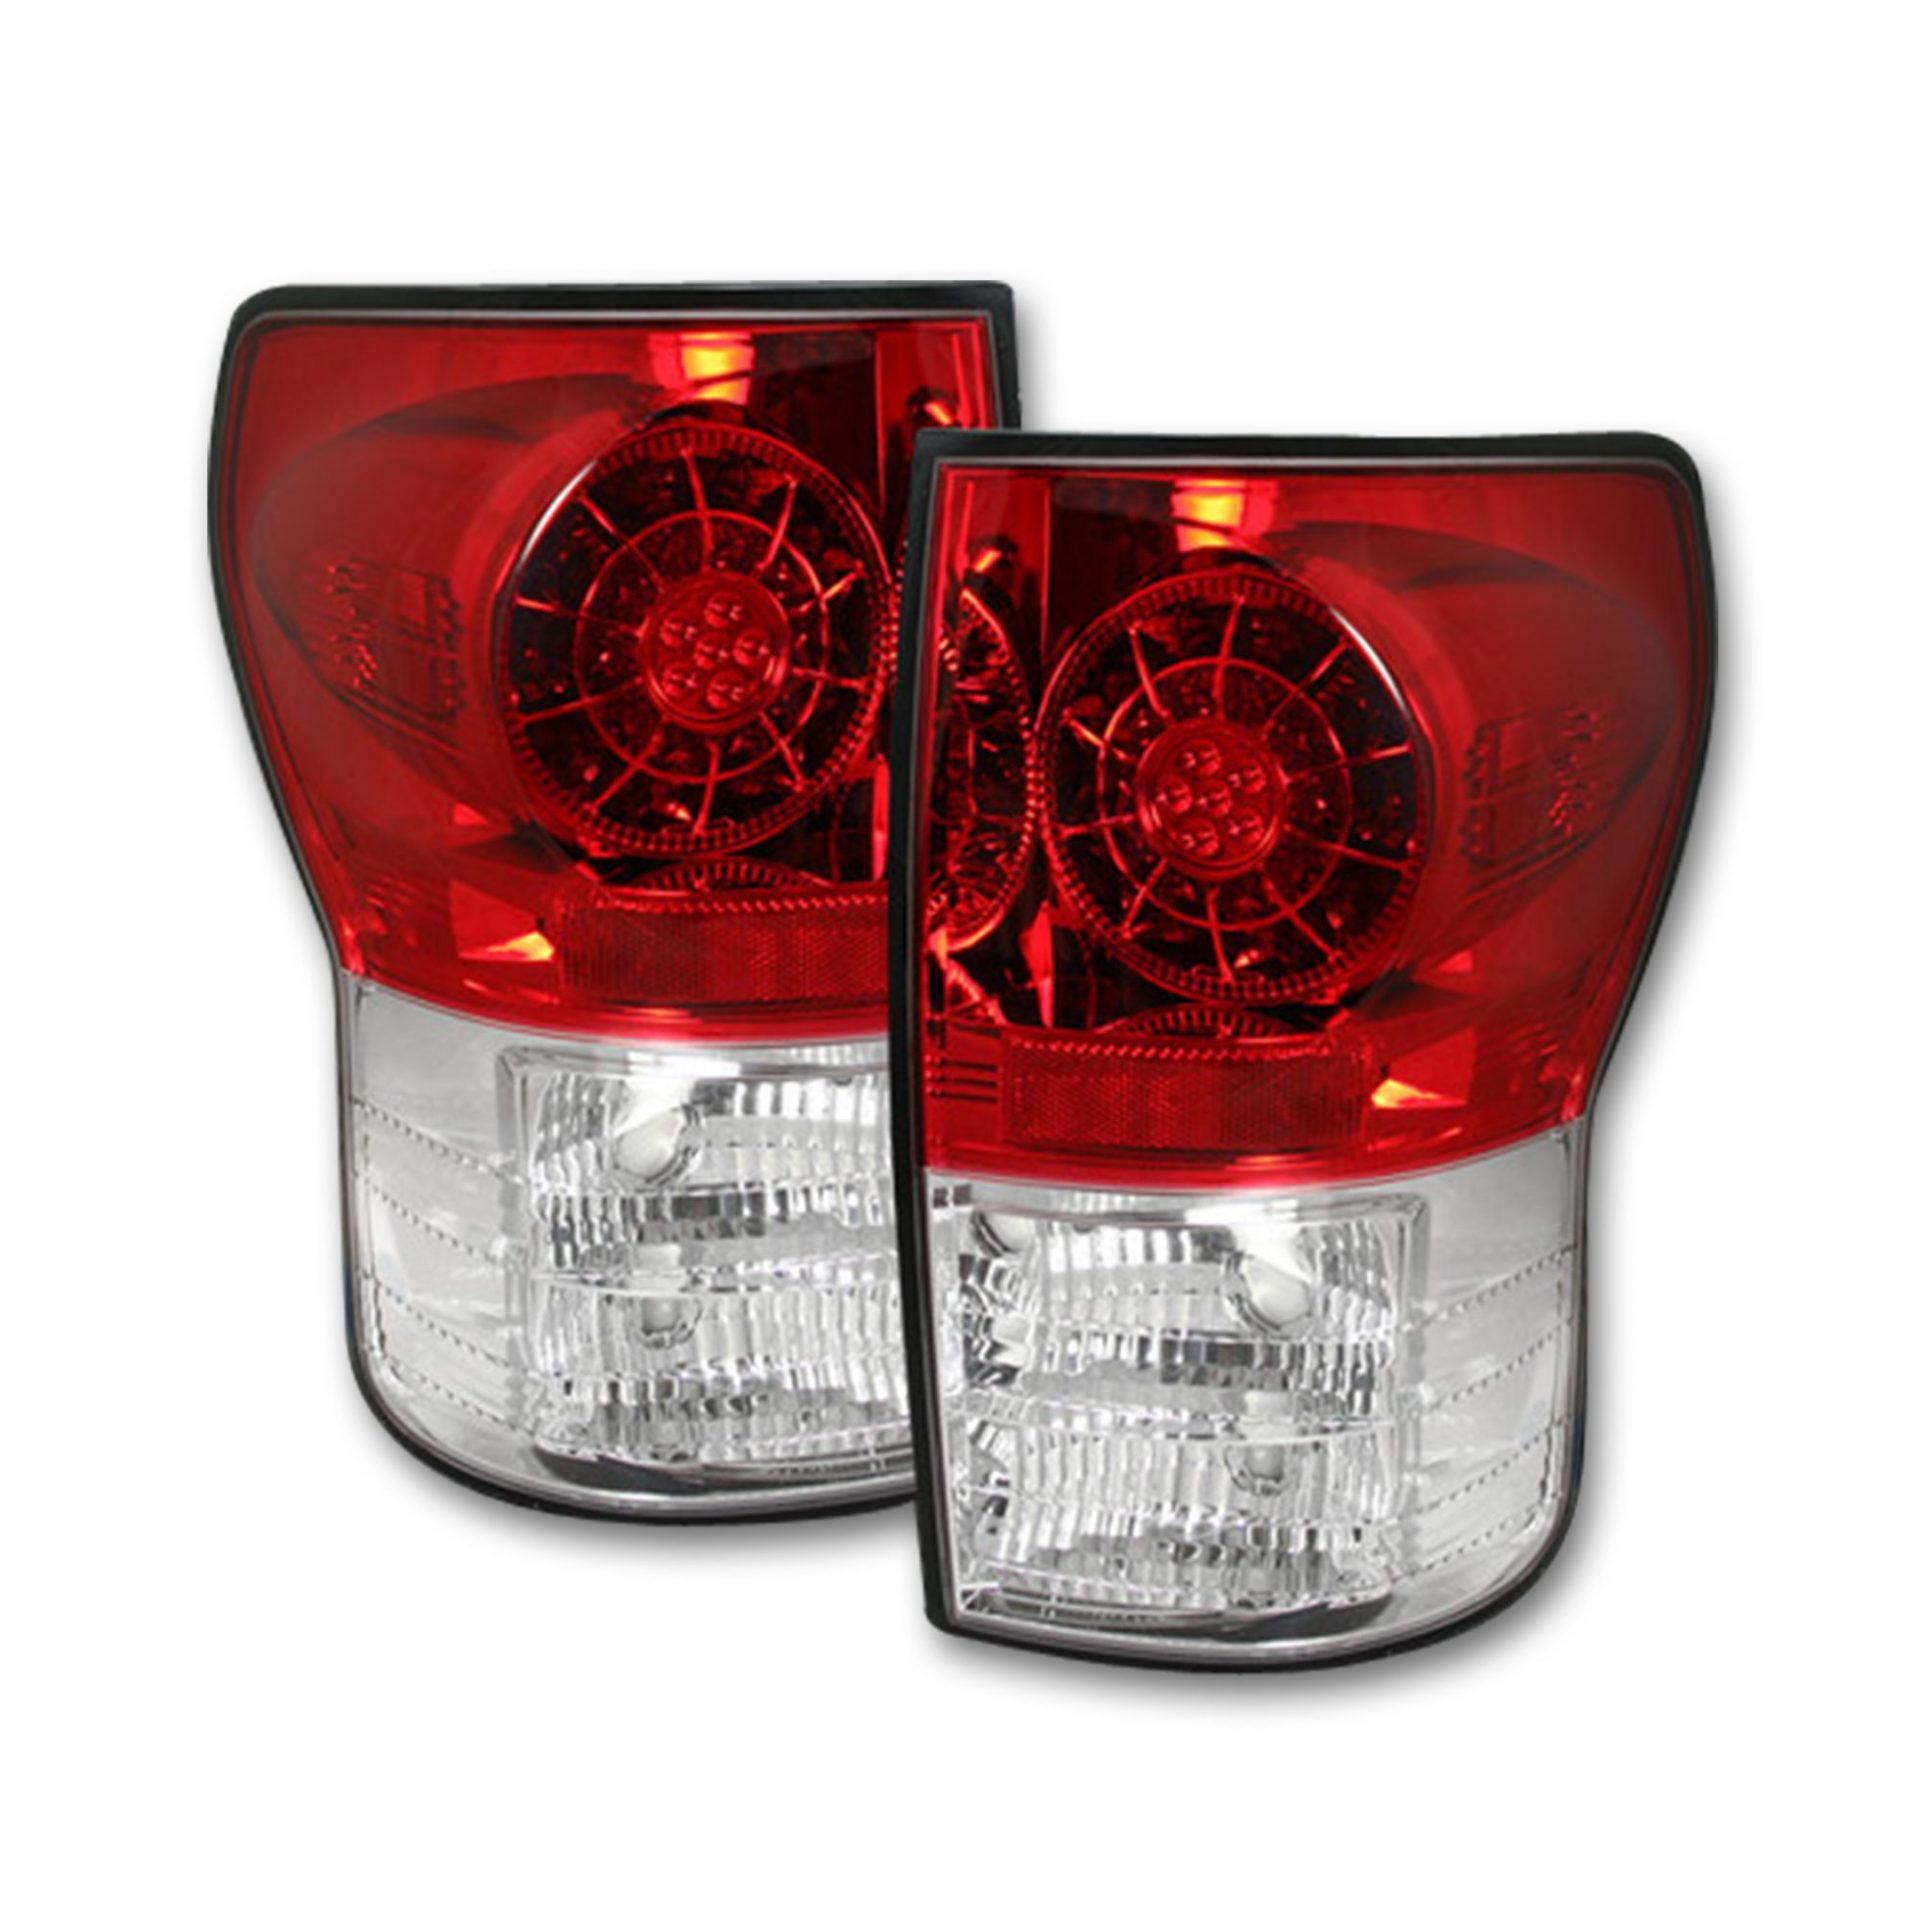 RECON 264188RD Toyota Tundra 07-13 LED Taillights - Red Lens